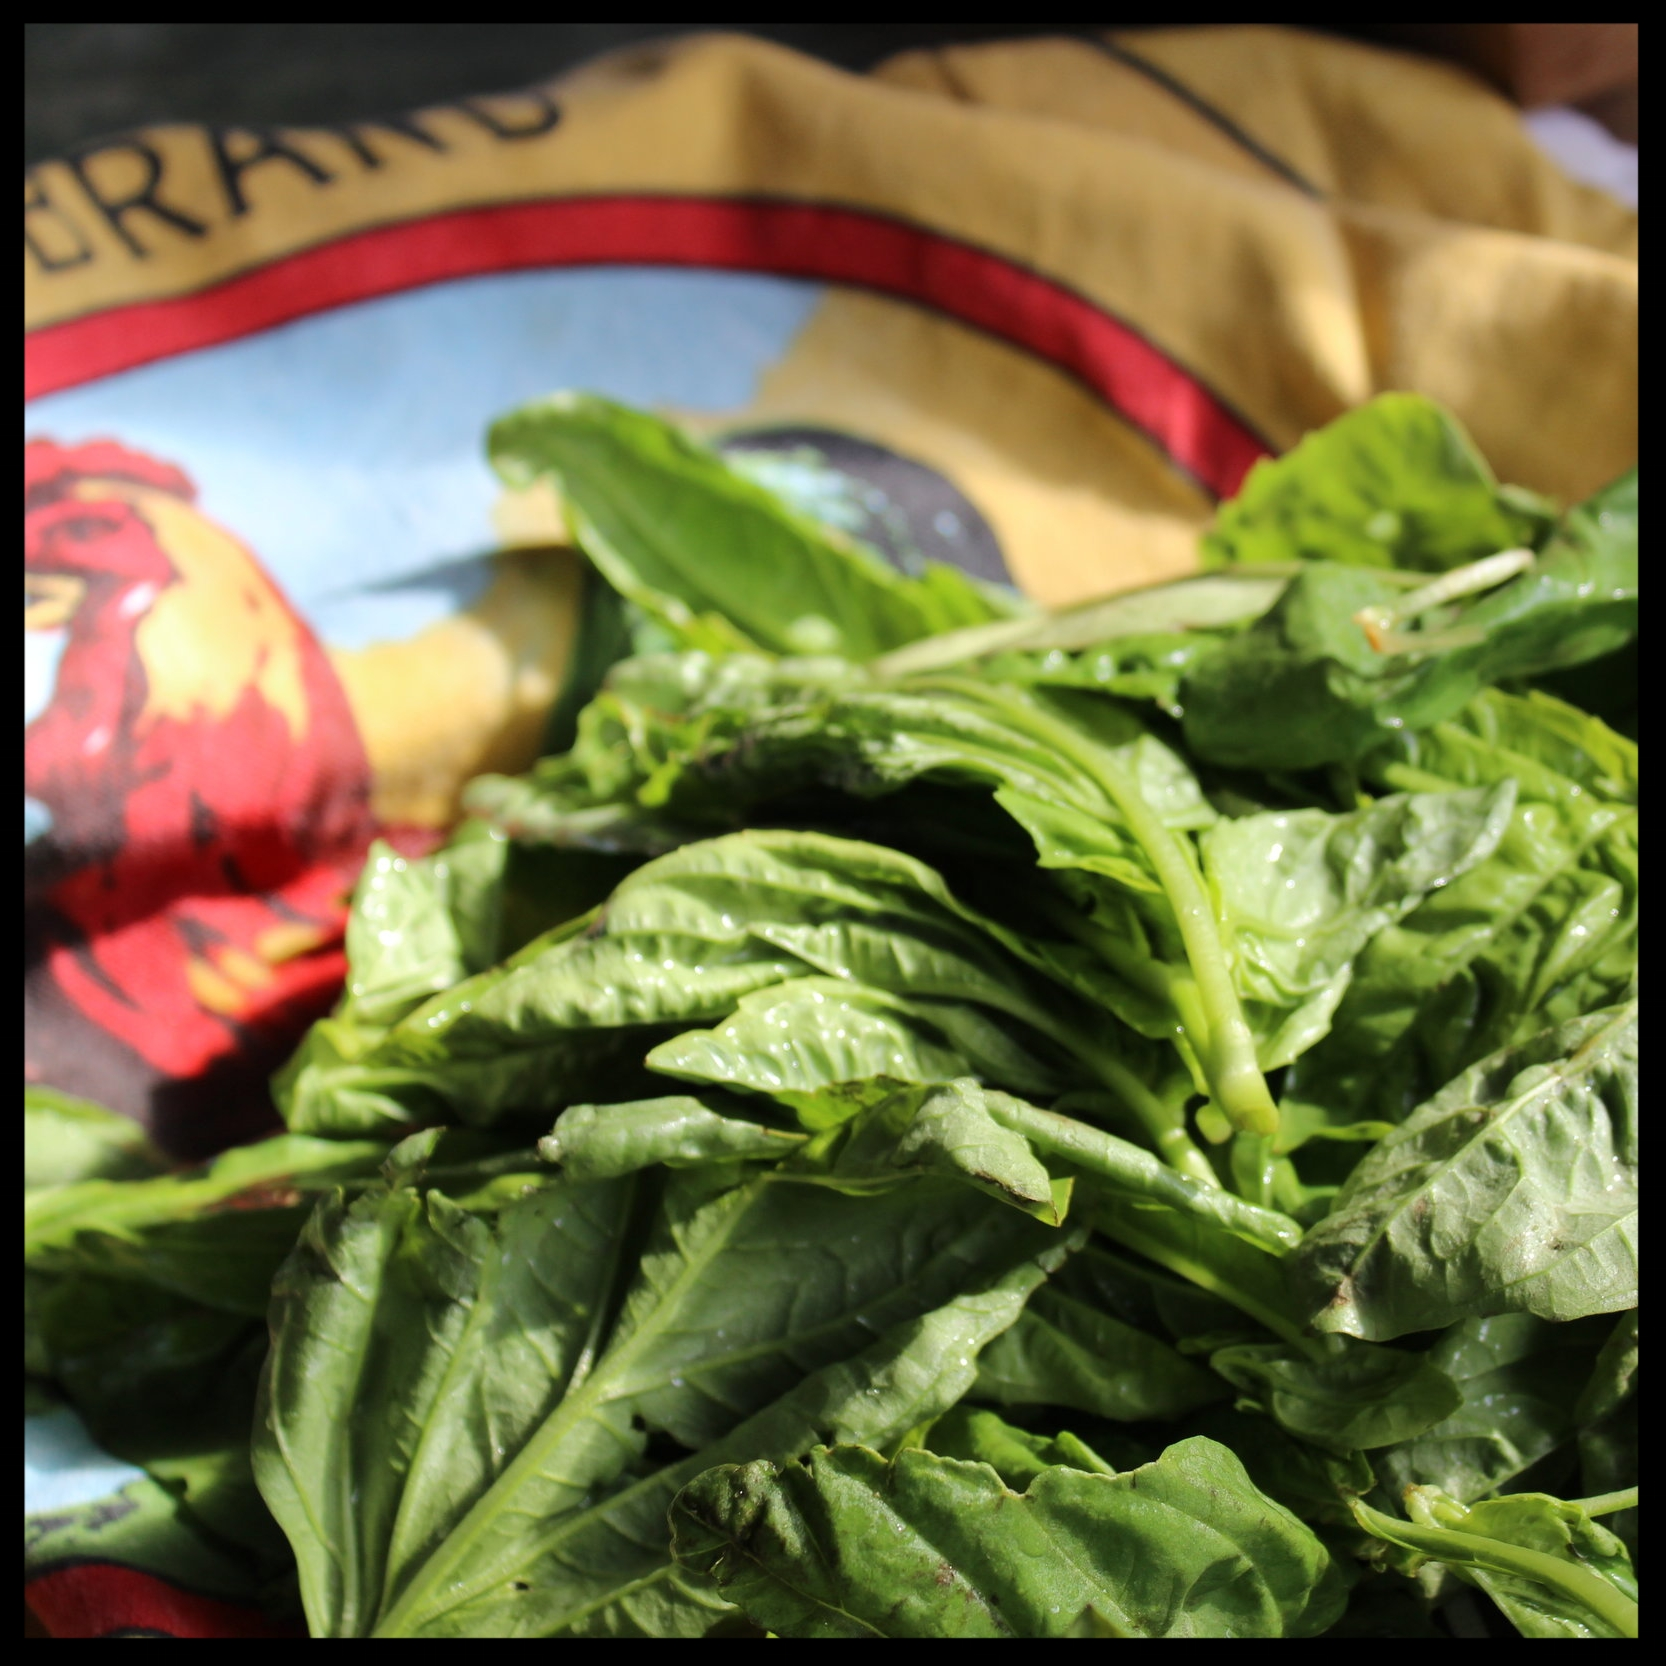 5. Put your basil in a colander and gently rinse.  6. Lay it out on a towel, roll up and gently pat dry.  TIP: If the stems are woody, cut them off. Otherwise you can include the soft, bendable thinner stems in your pesto. They add tons of flavor.